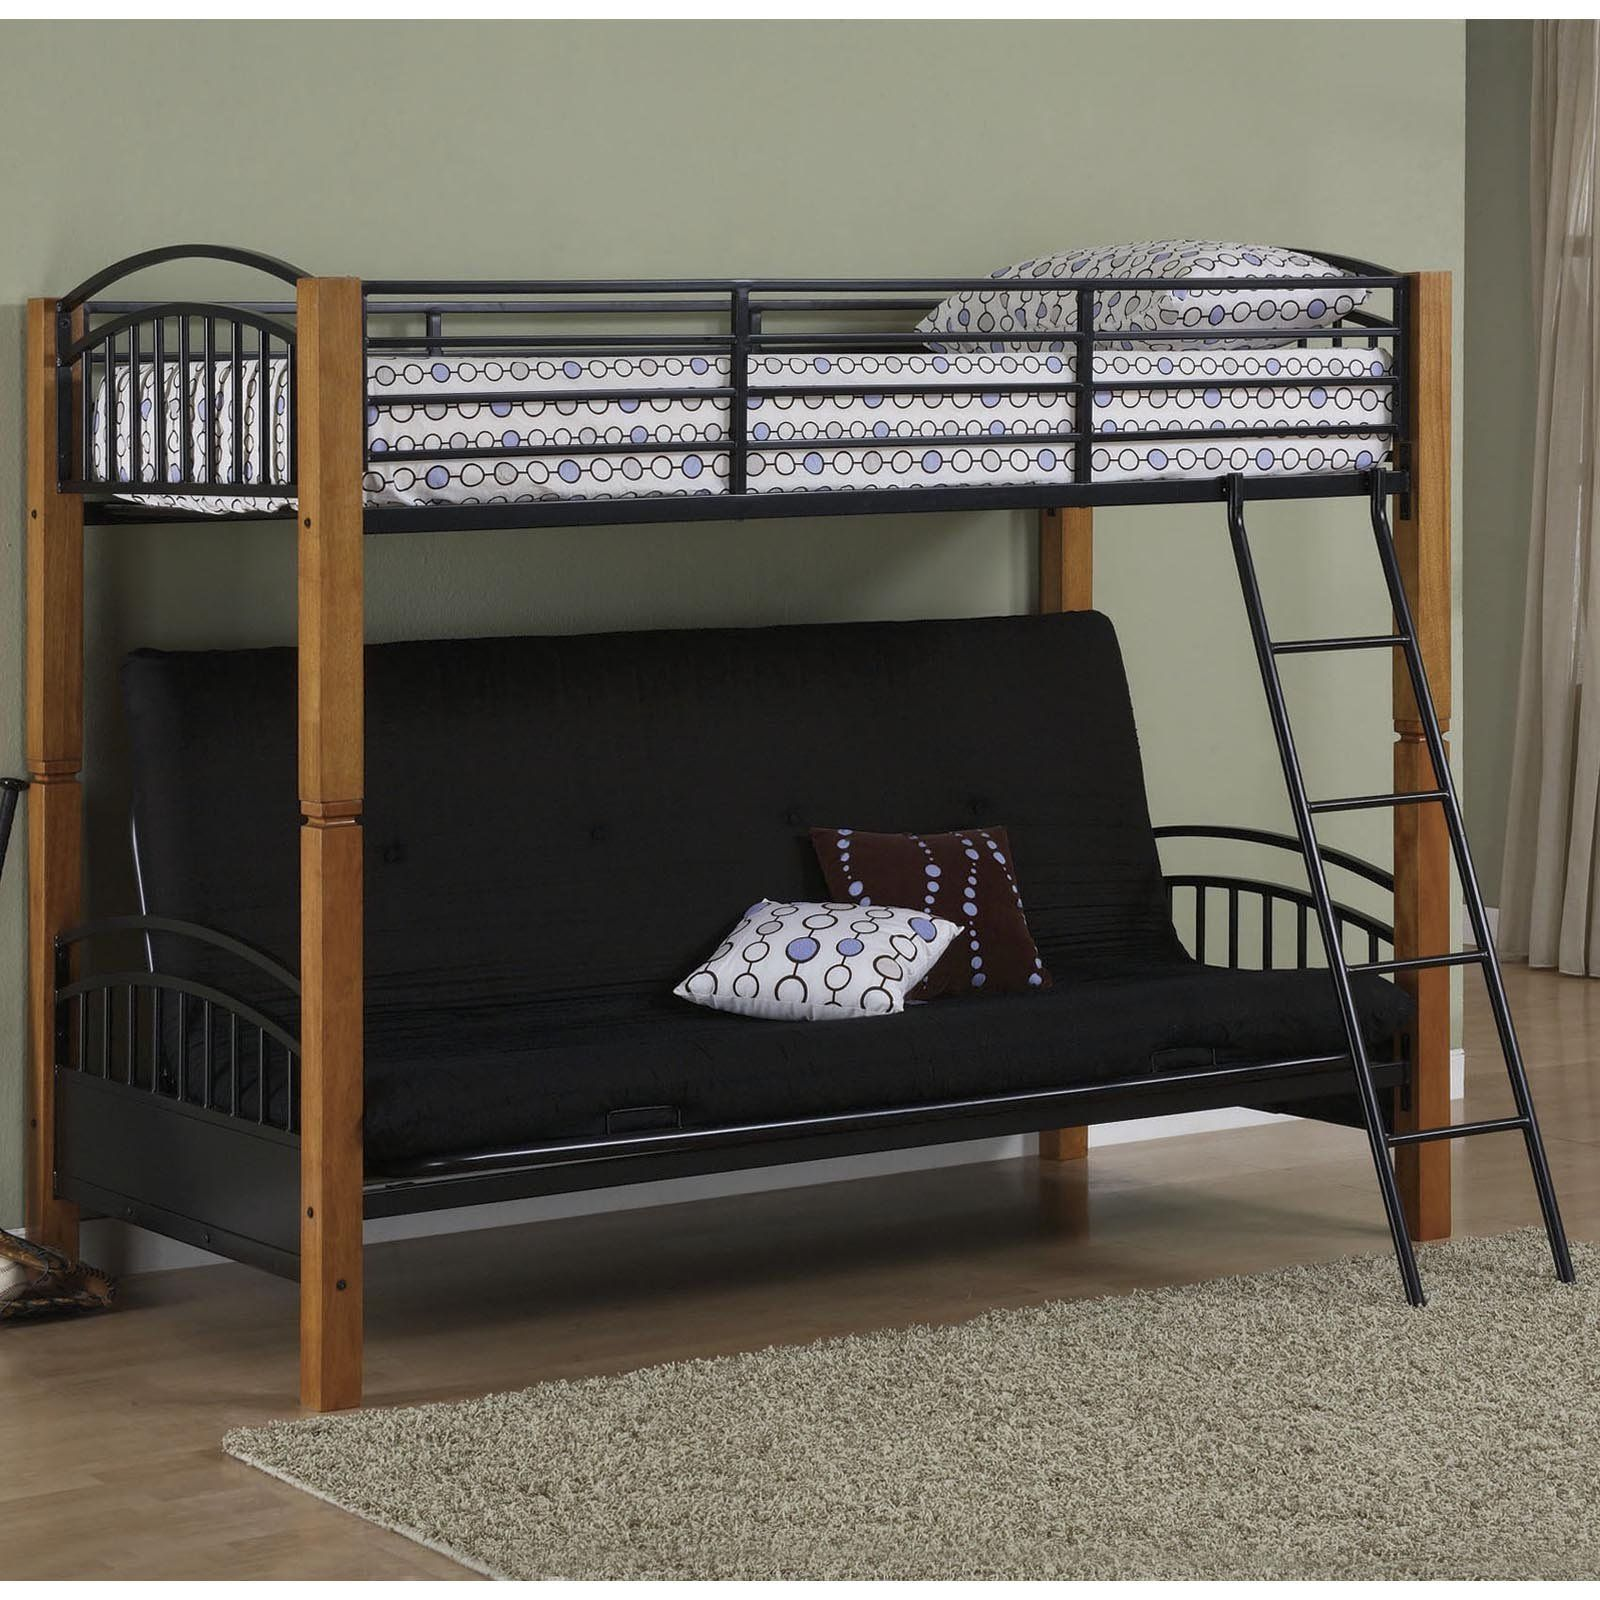 99 Bunk Bed With Futon Underneath Interior Bedroom Design Furniture Check More At Http Image Com